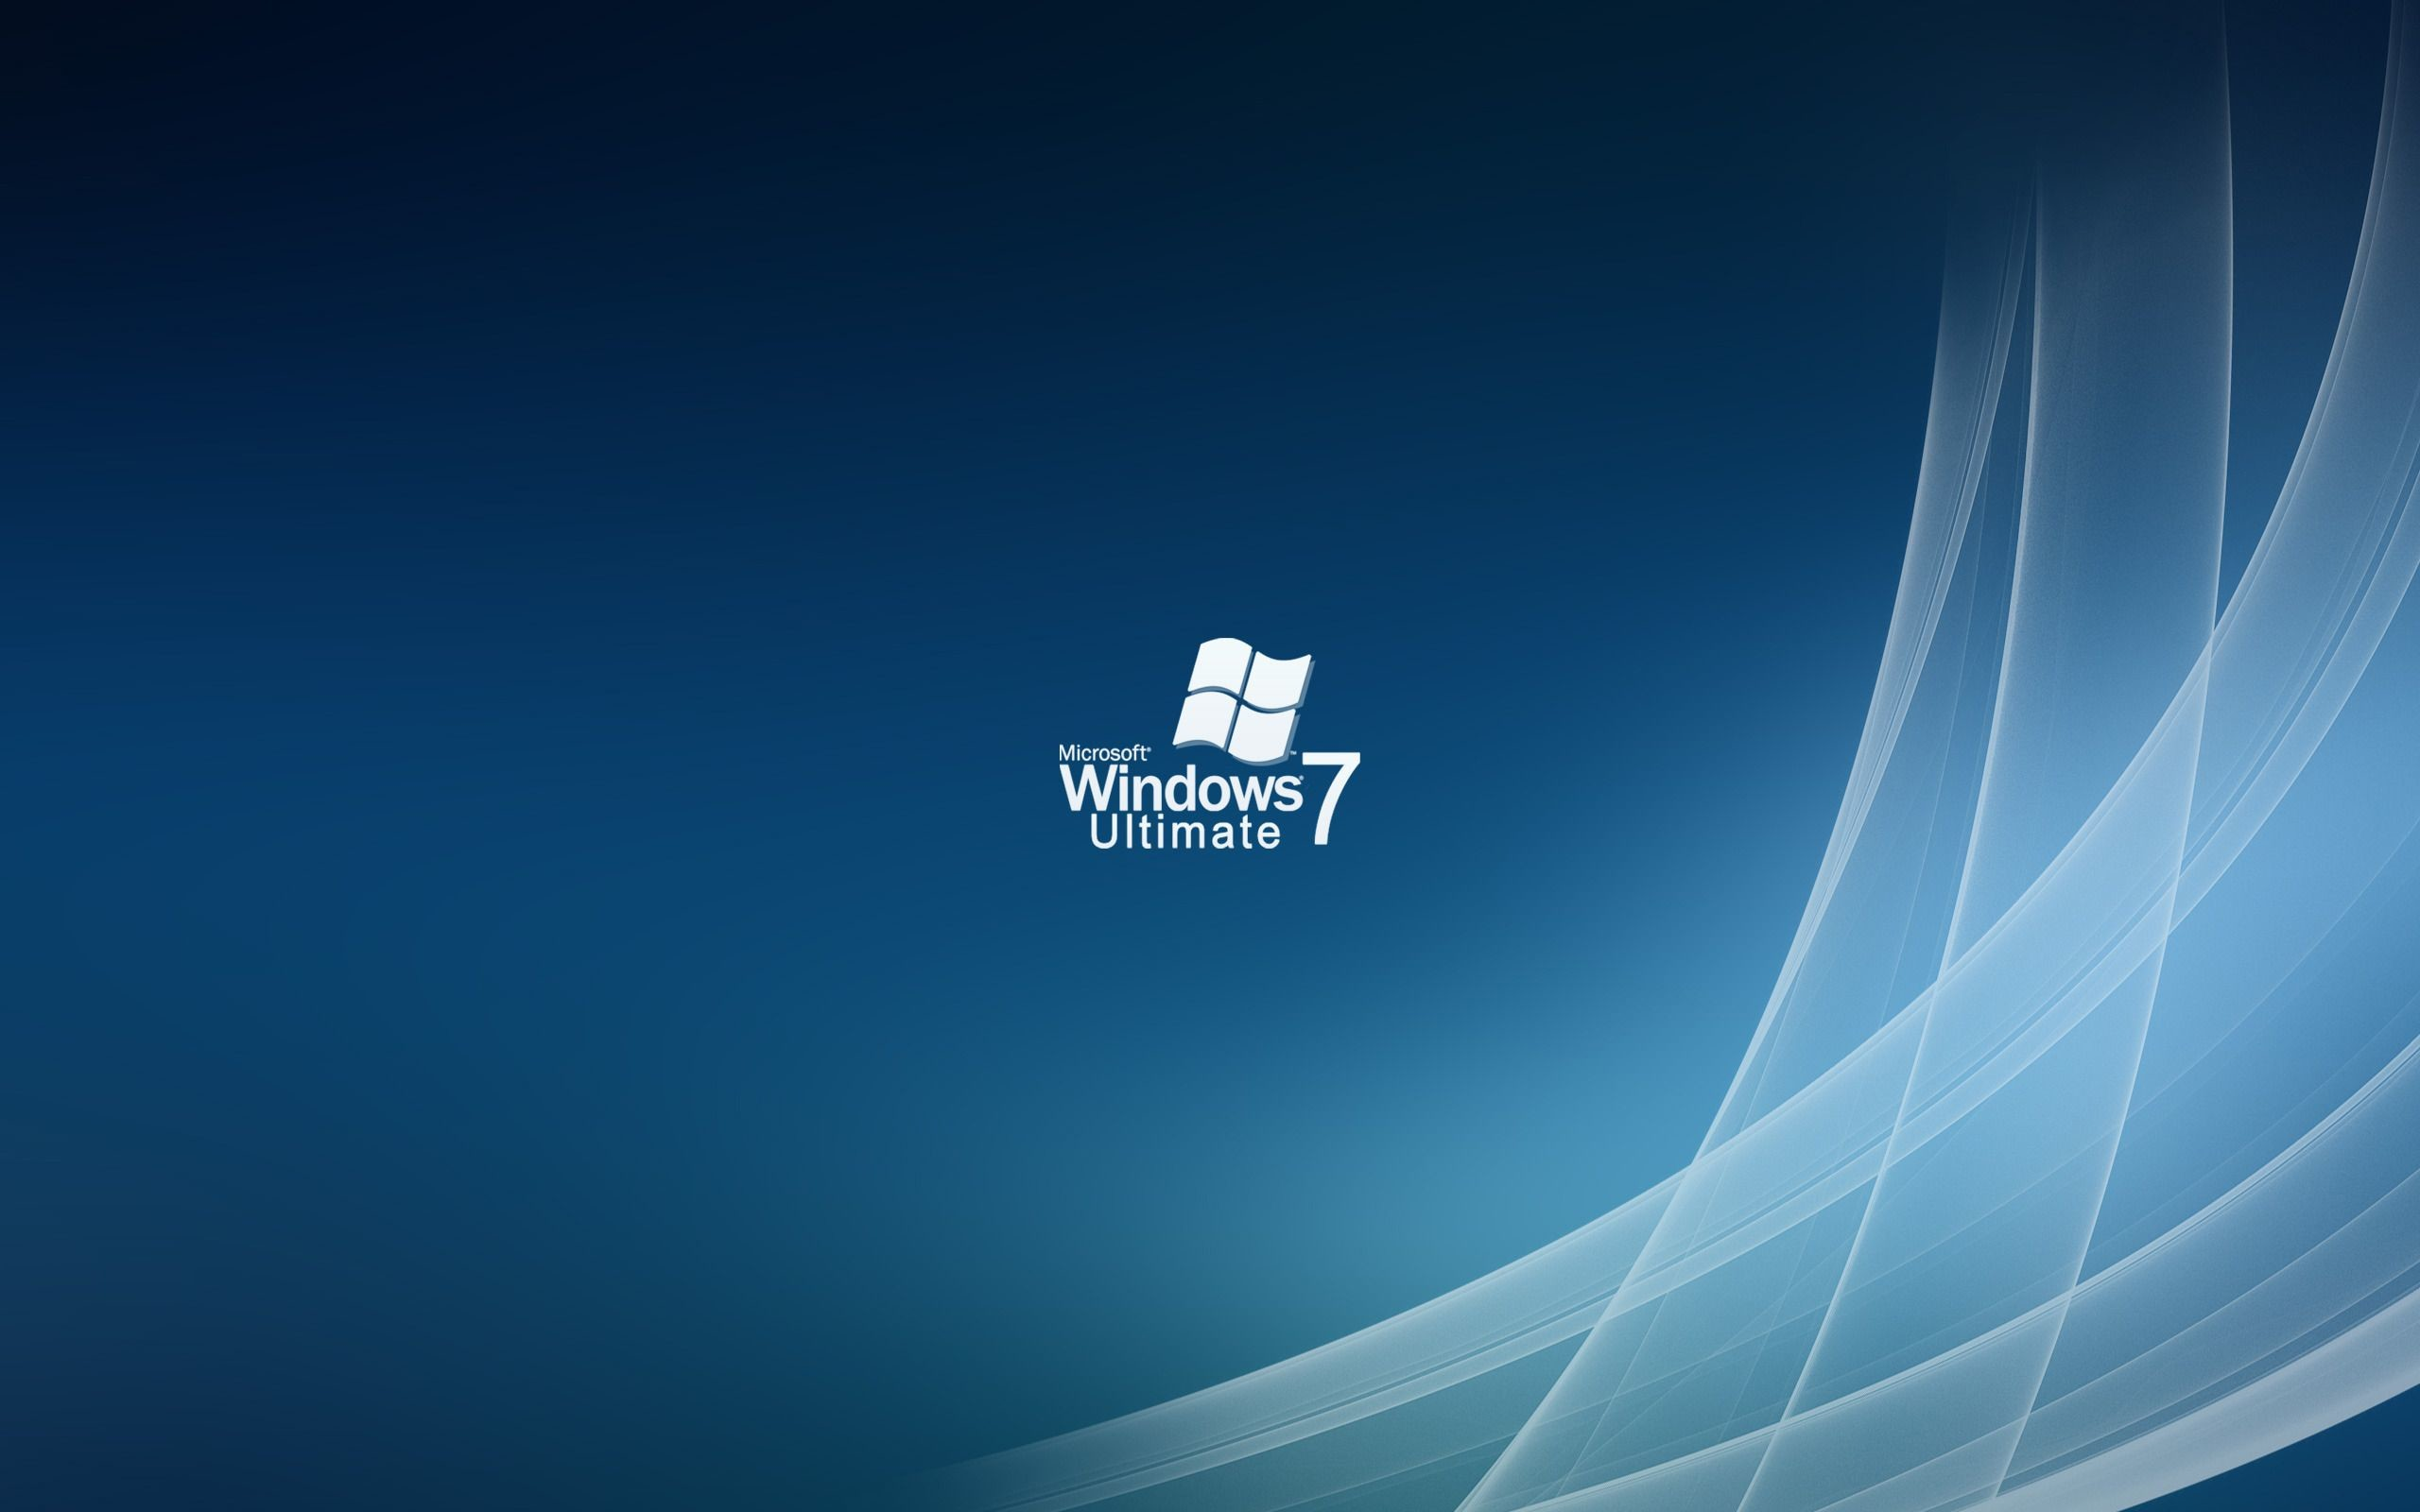 Windows 7 Professional Wallpaper 72 Images